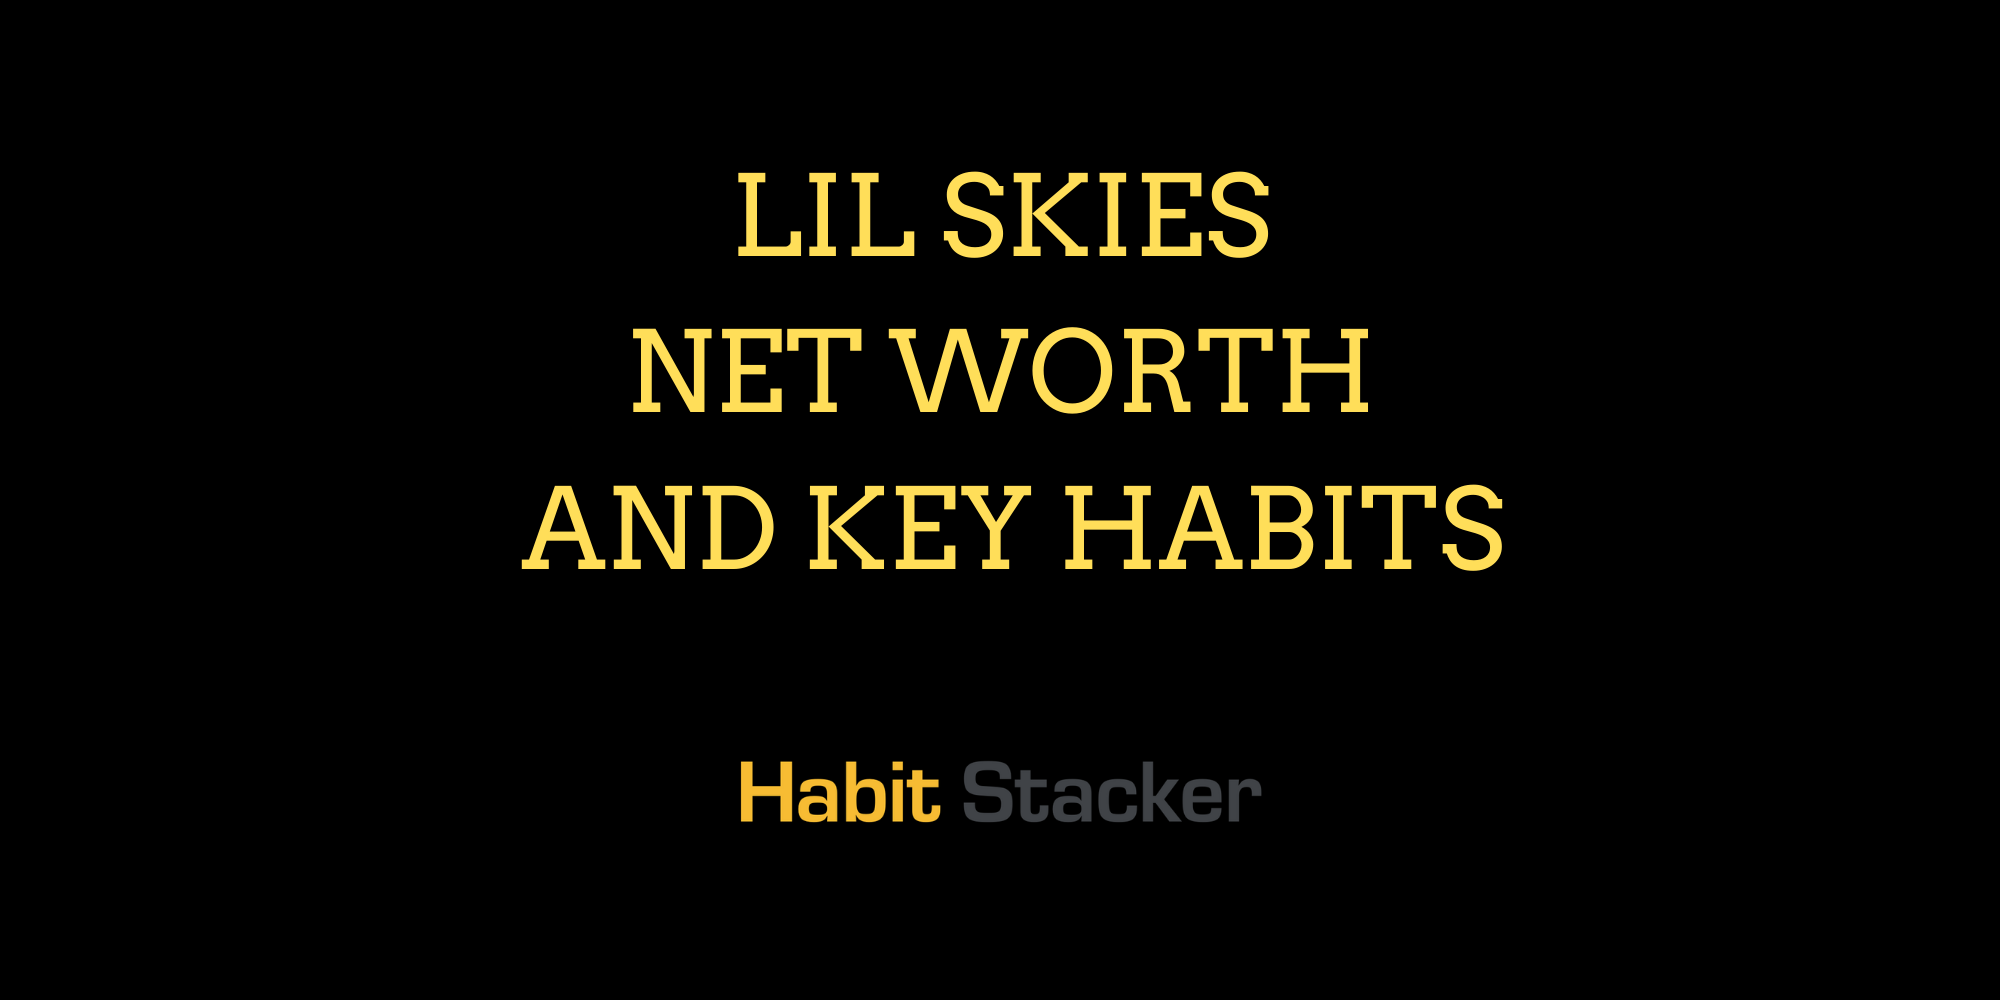 Lil Skies Net Worth and Key Habits